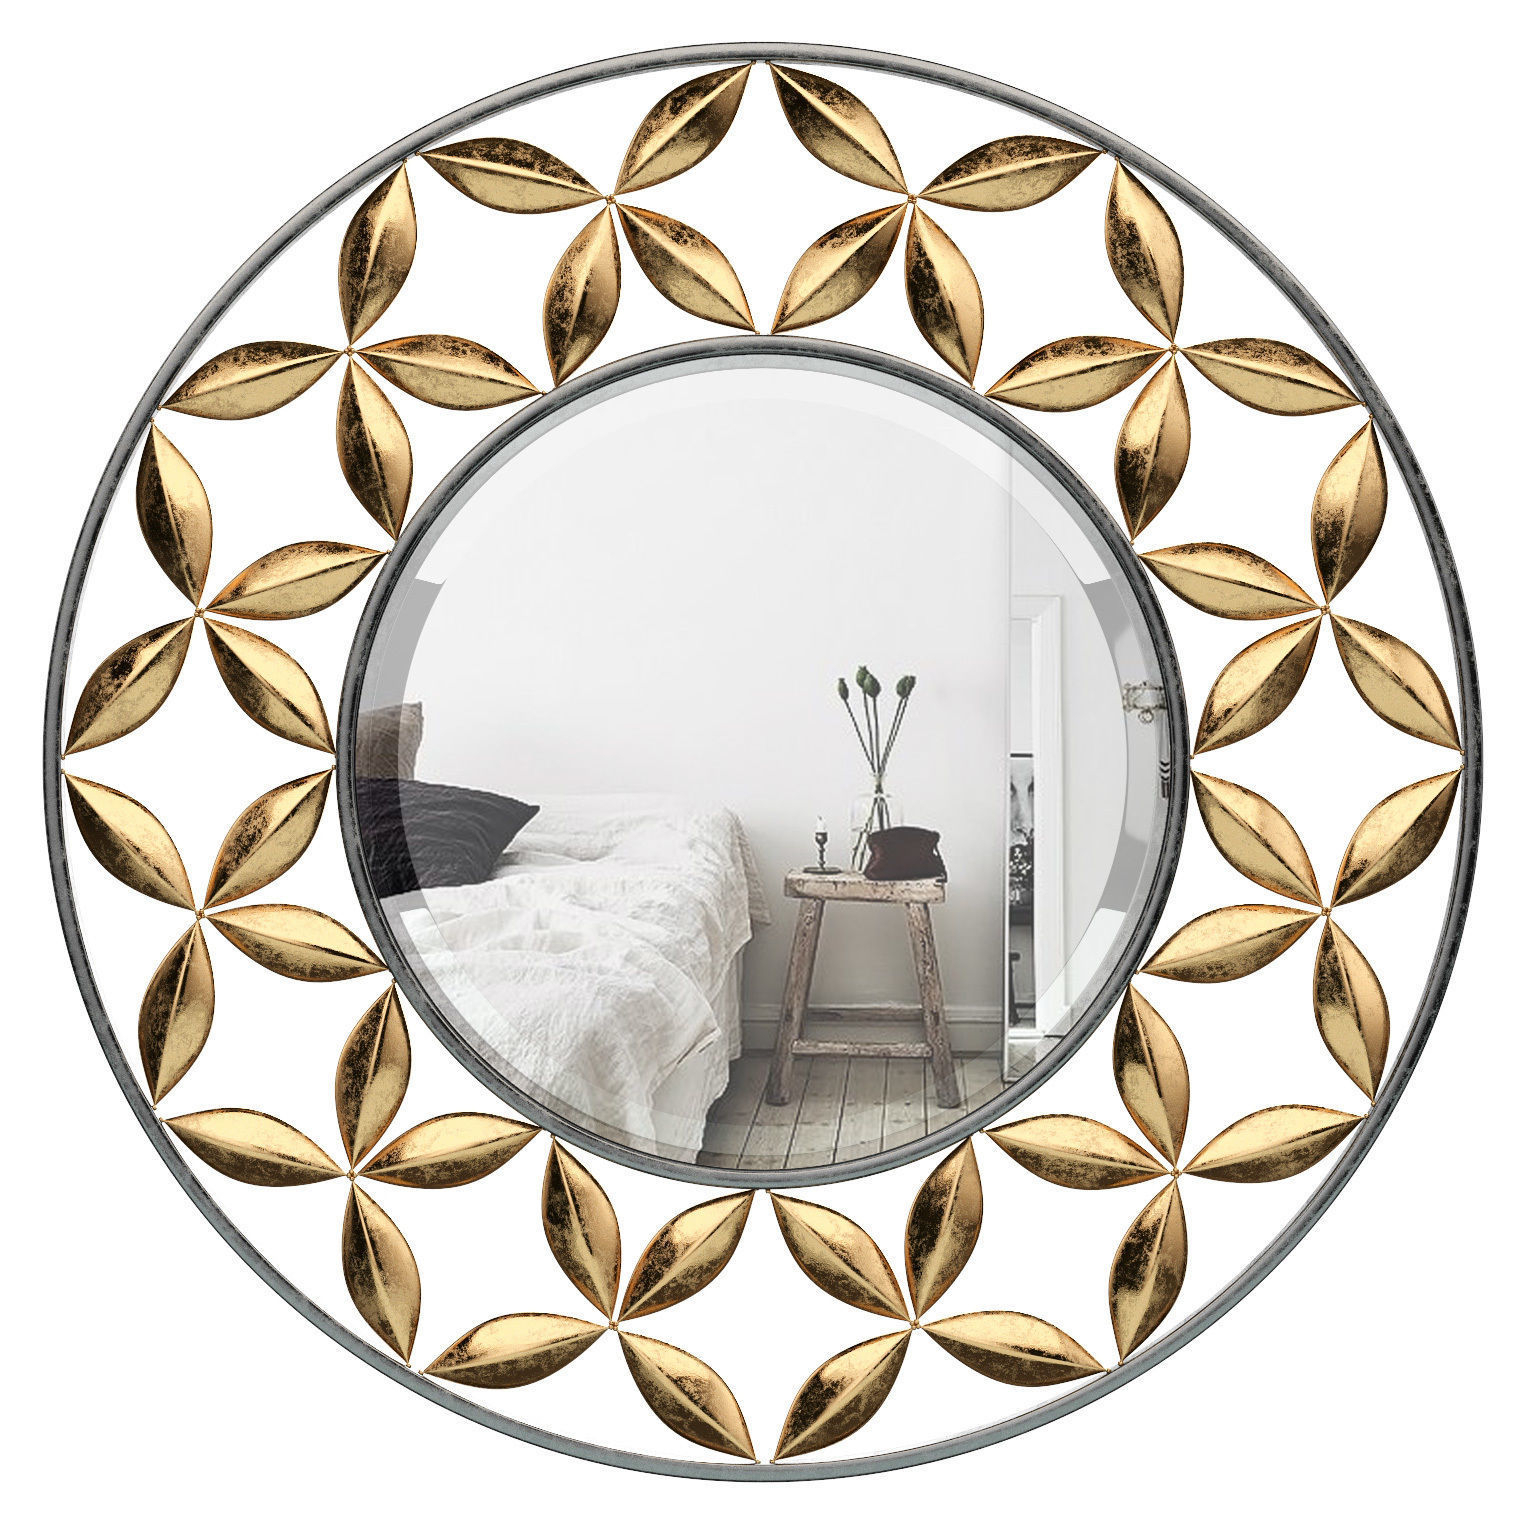 Round Metal Wall Mirror Astg7285 | 3D Model with Kentwood Round Wall Mirrors (Image 25 of 30)